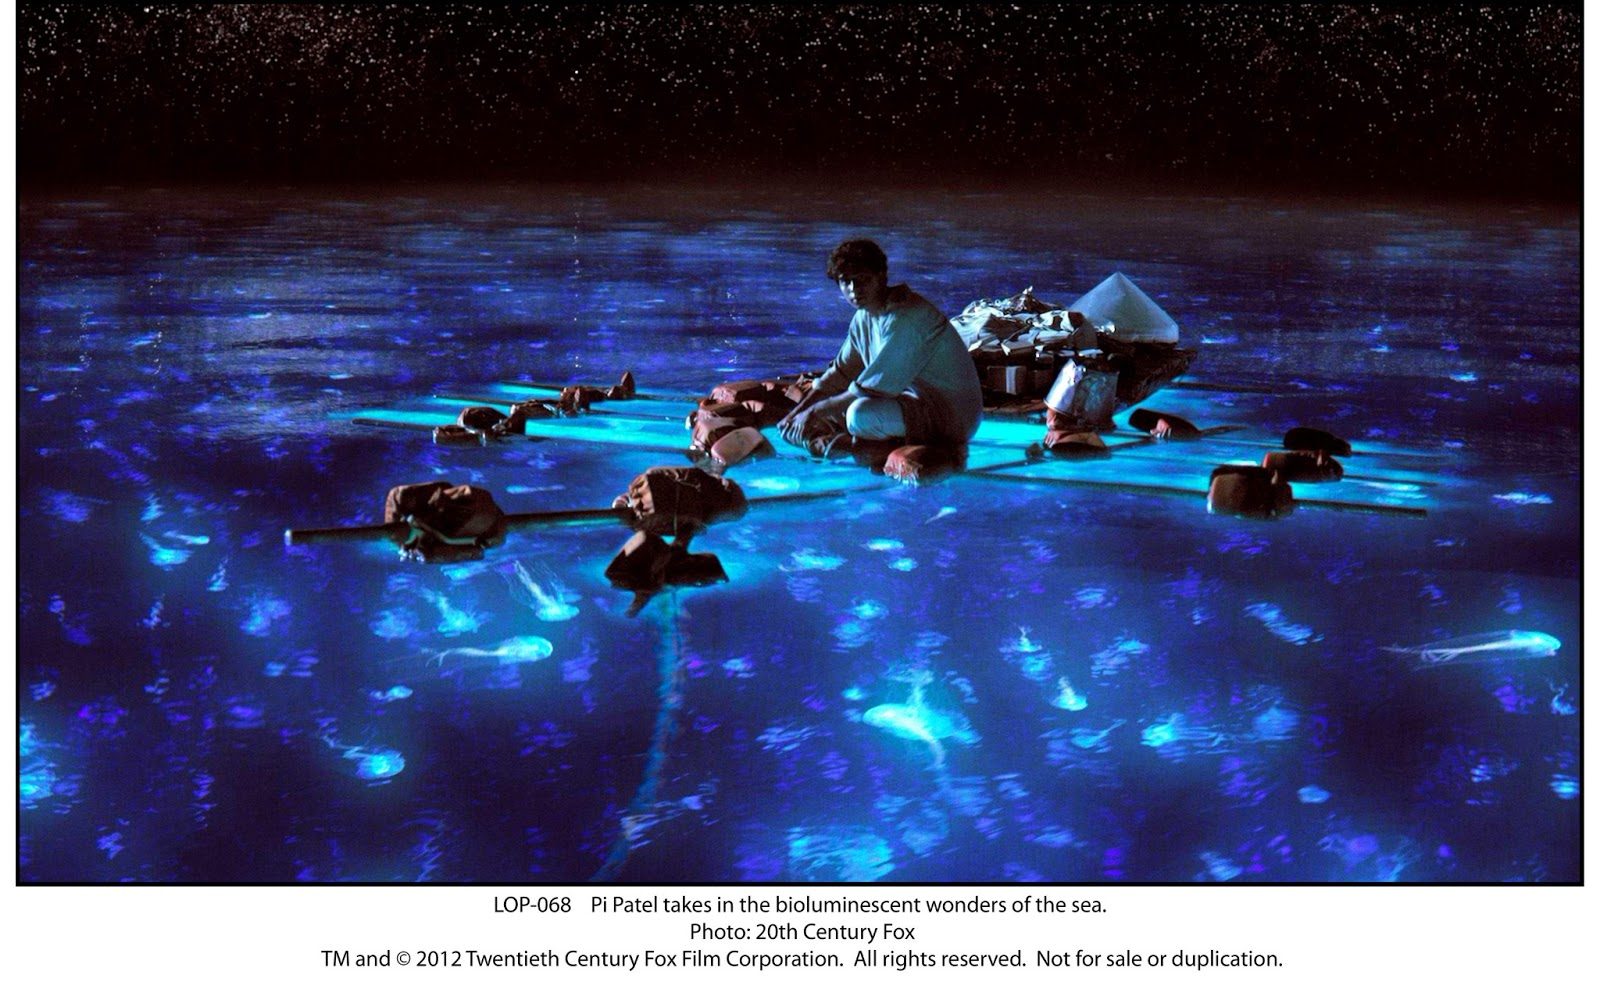 ocean of possibilities the making of life of pi conveyed a sense that it was beautiful but felt so desolate and lonely that you could sense through the imagery that pi is starting to despair